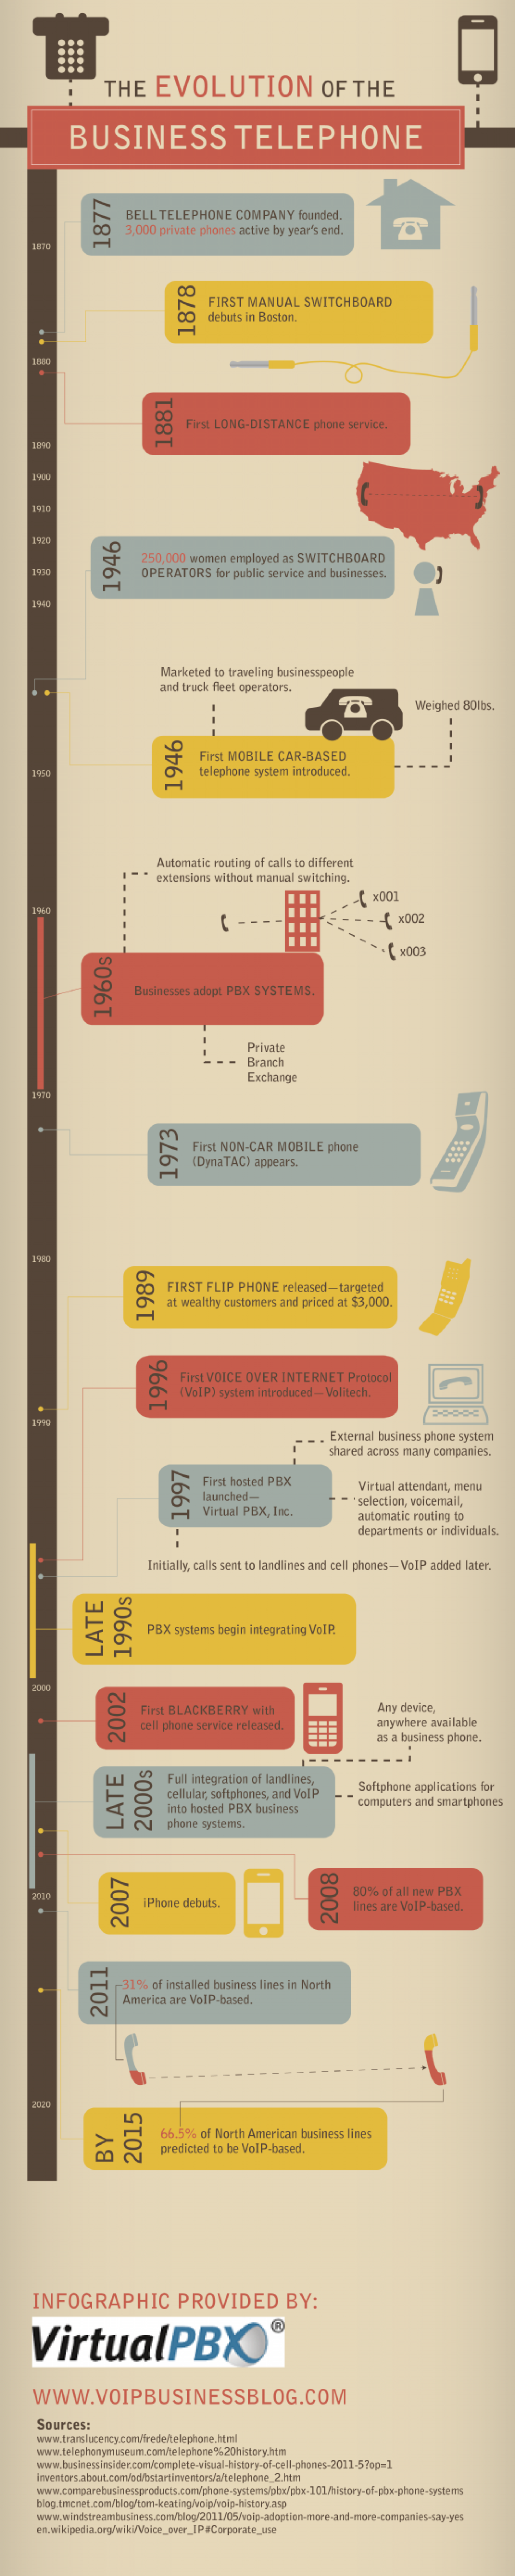 The Evolution of the Business Telephone Infographic